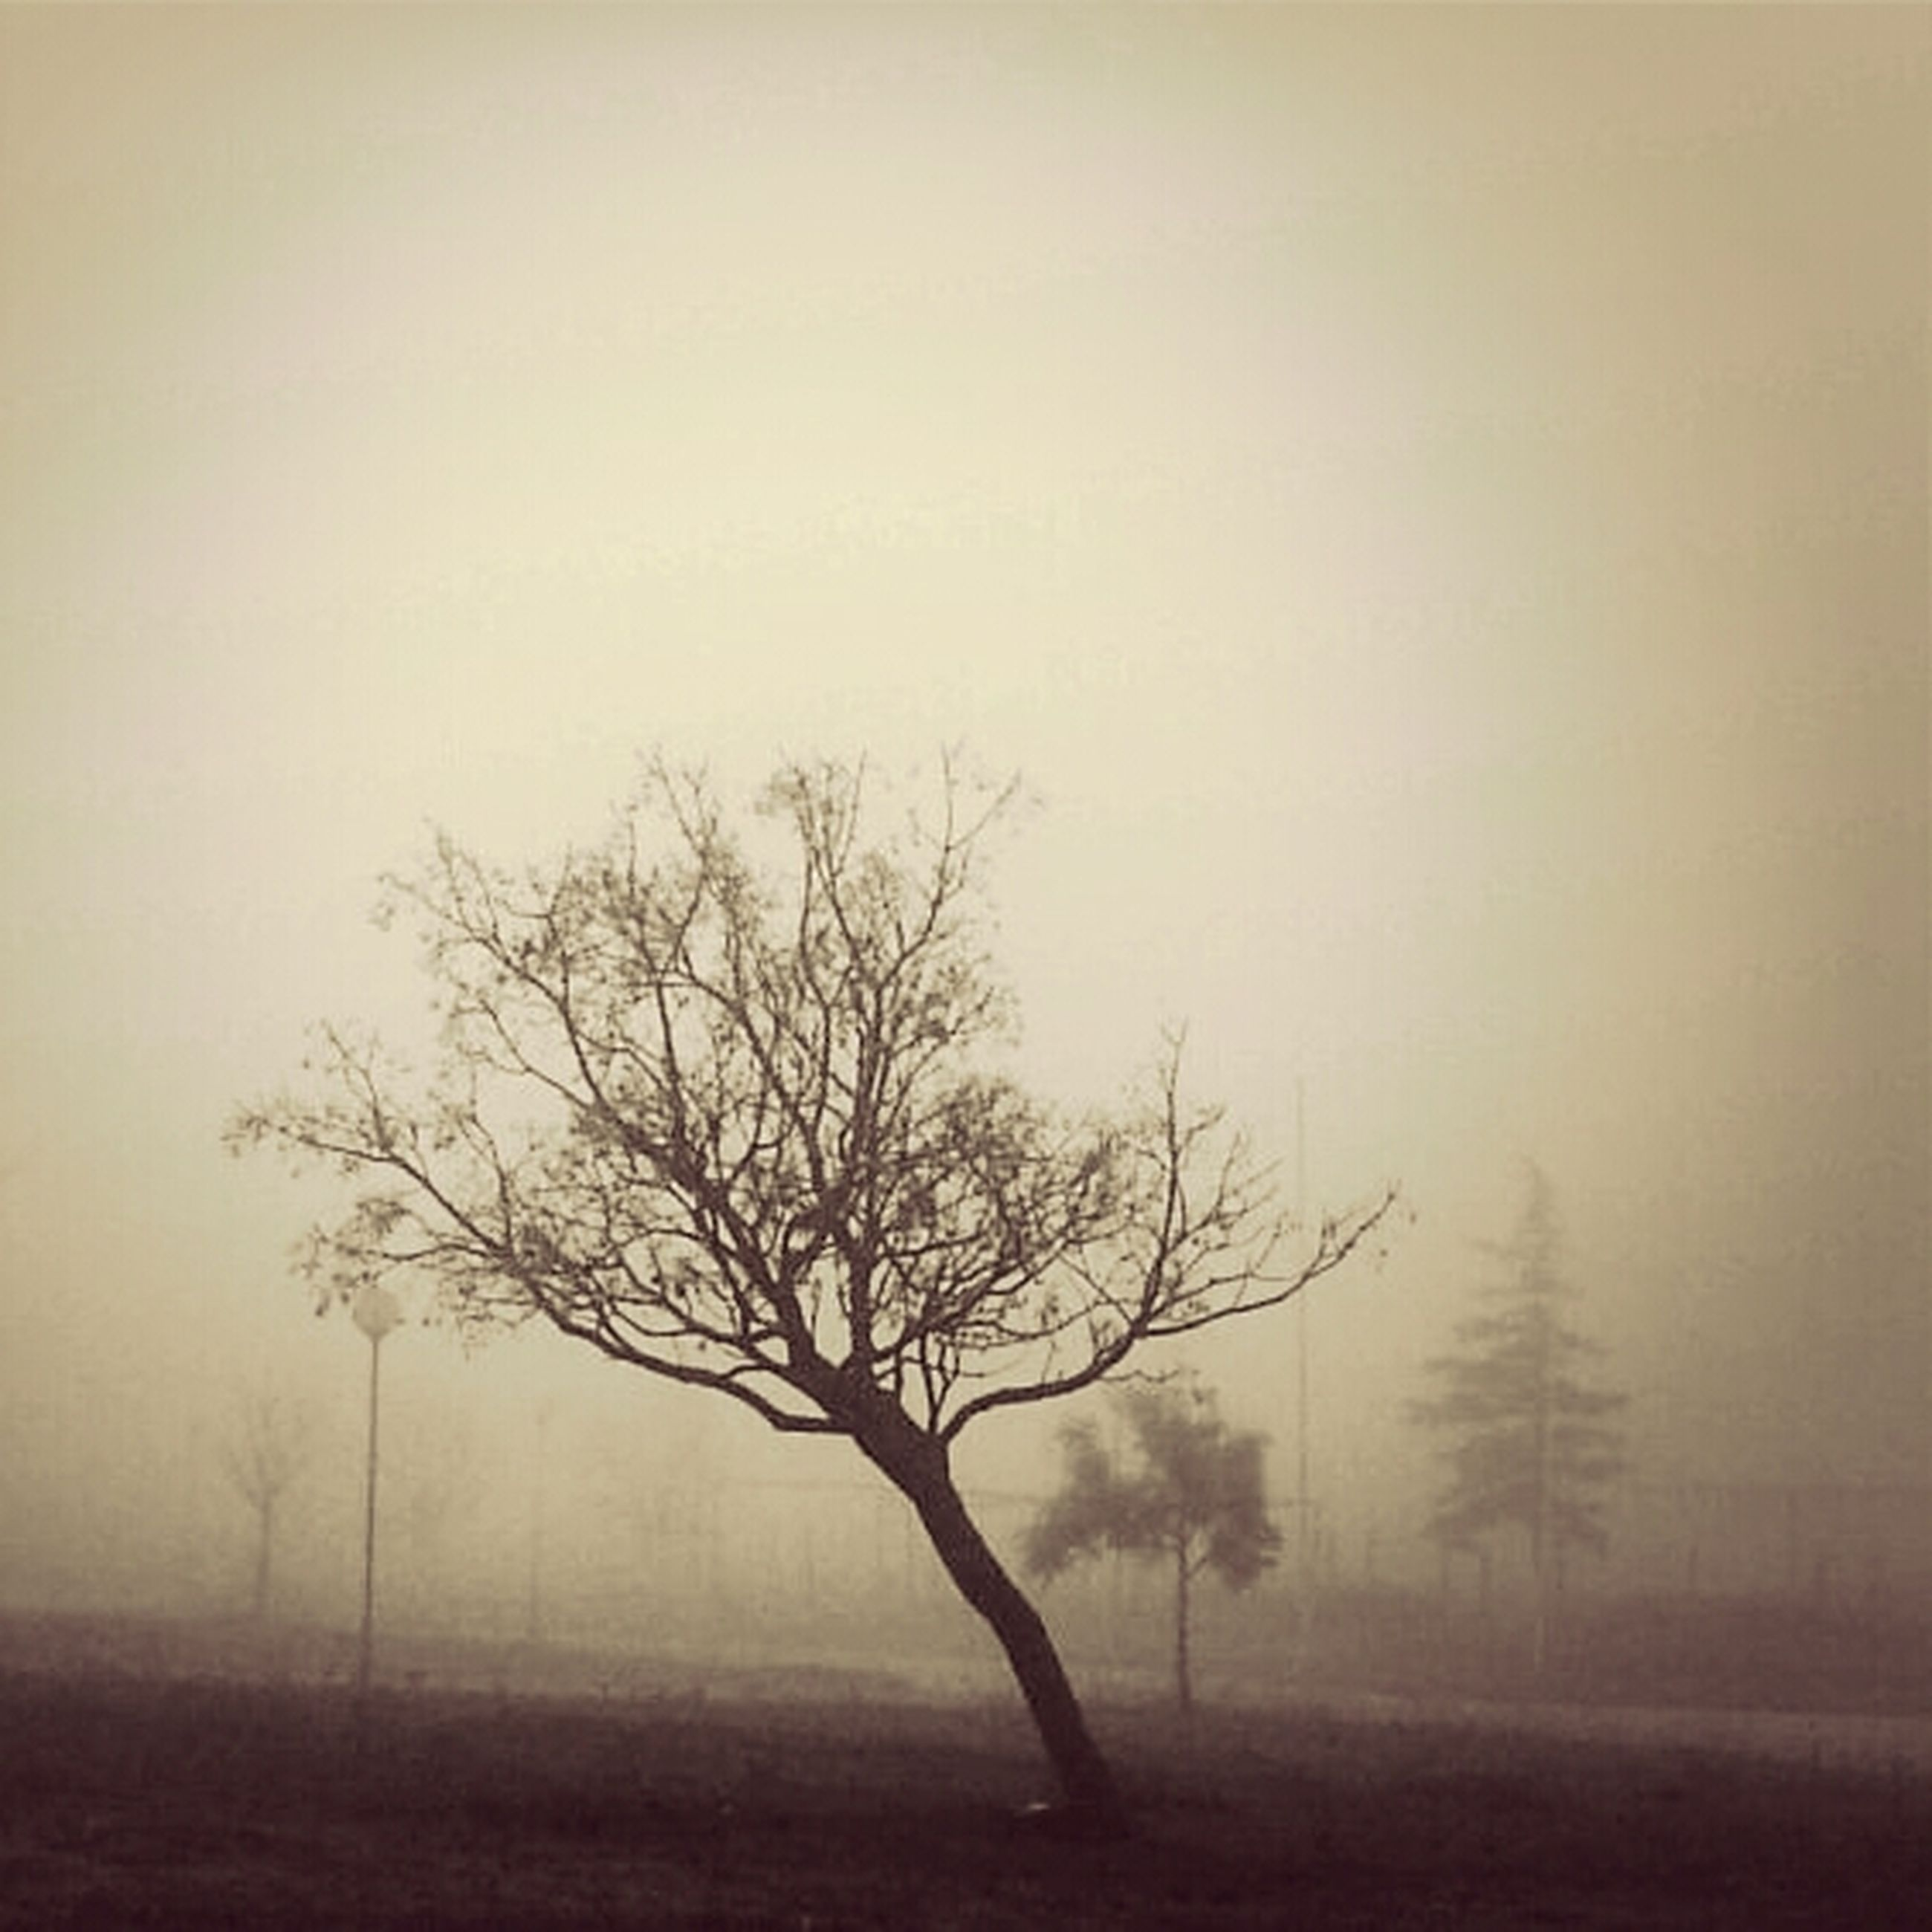 fog, tree, foggy, bare tree, tranquility, tranquil scene, landscape, field, nature, branch, scenics, beauty in nature, weather, tree trunk, silhouette, growth, non-urban scene, copy space, no people